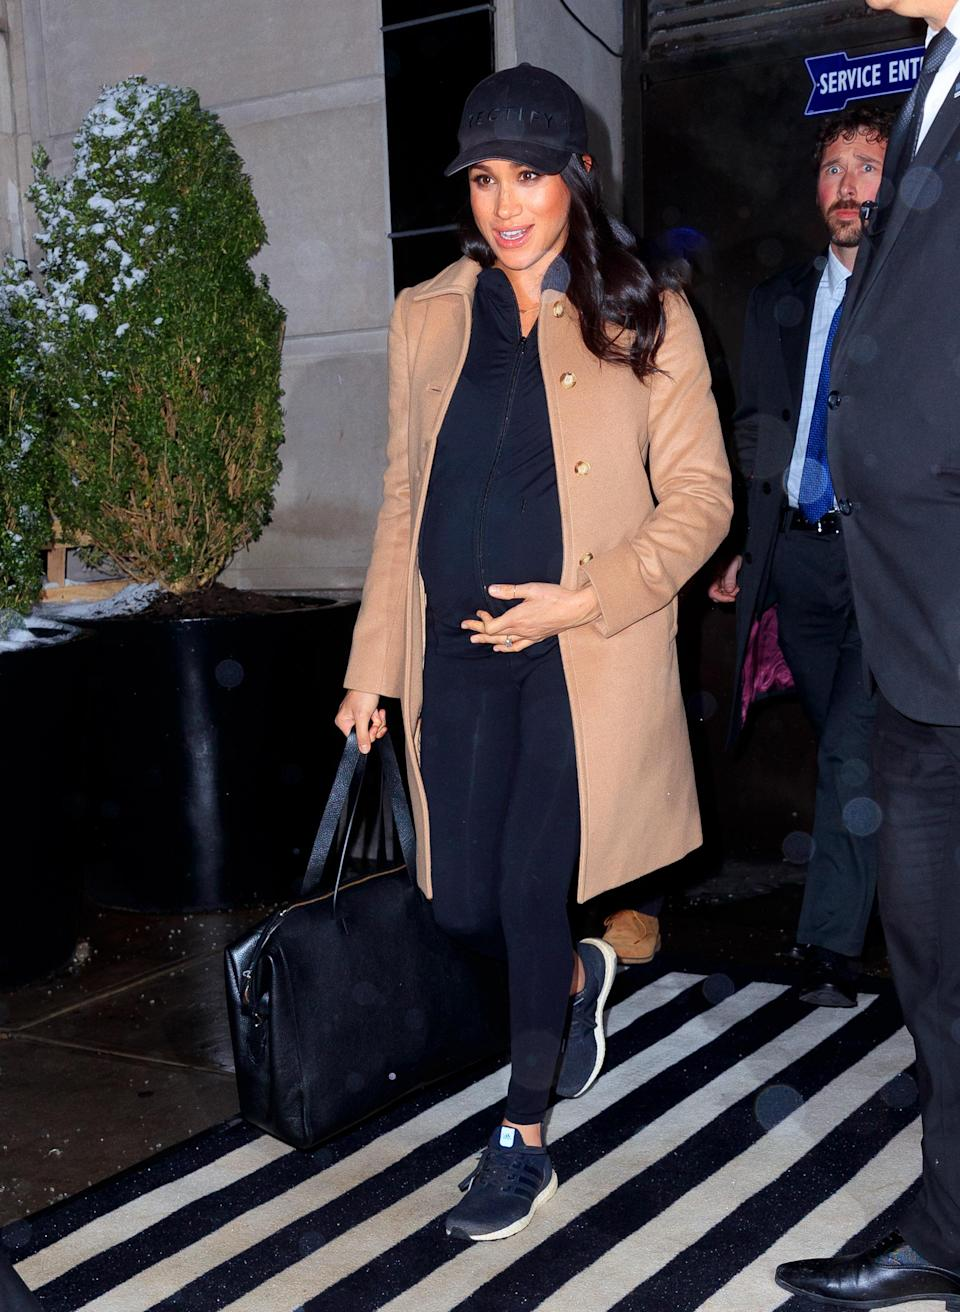 Meghan leaves New York for her flight home to London [Photo: Getty]